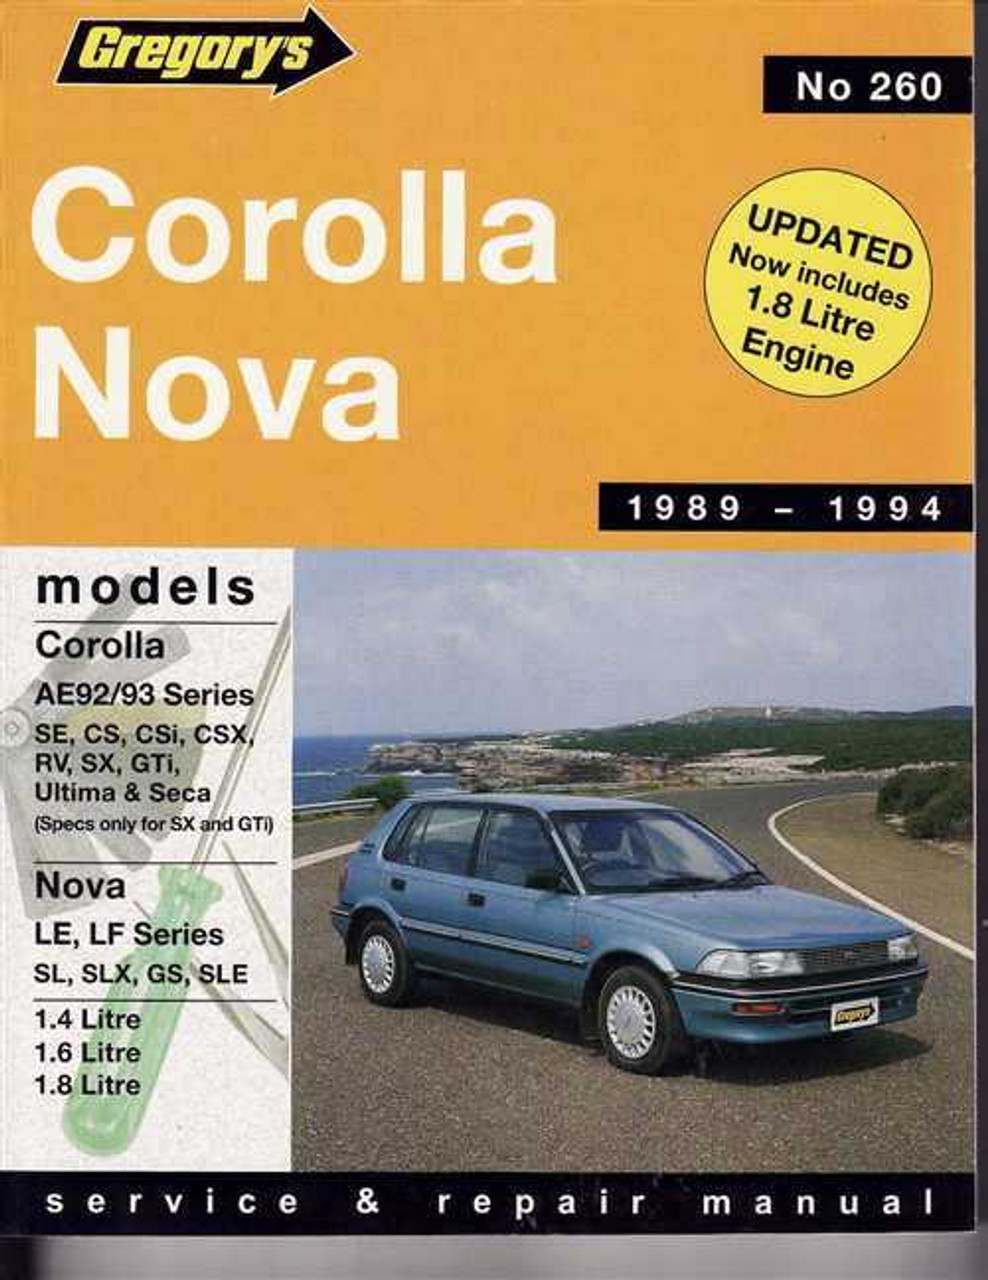 toyota corolla amp holden nova 1989 1994 workshop manual rh automotobookshop com au 1994 toyota corolla owners manual pdf 1994 toyota corolla repair manual